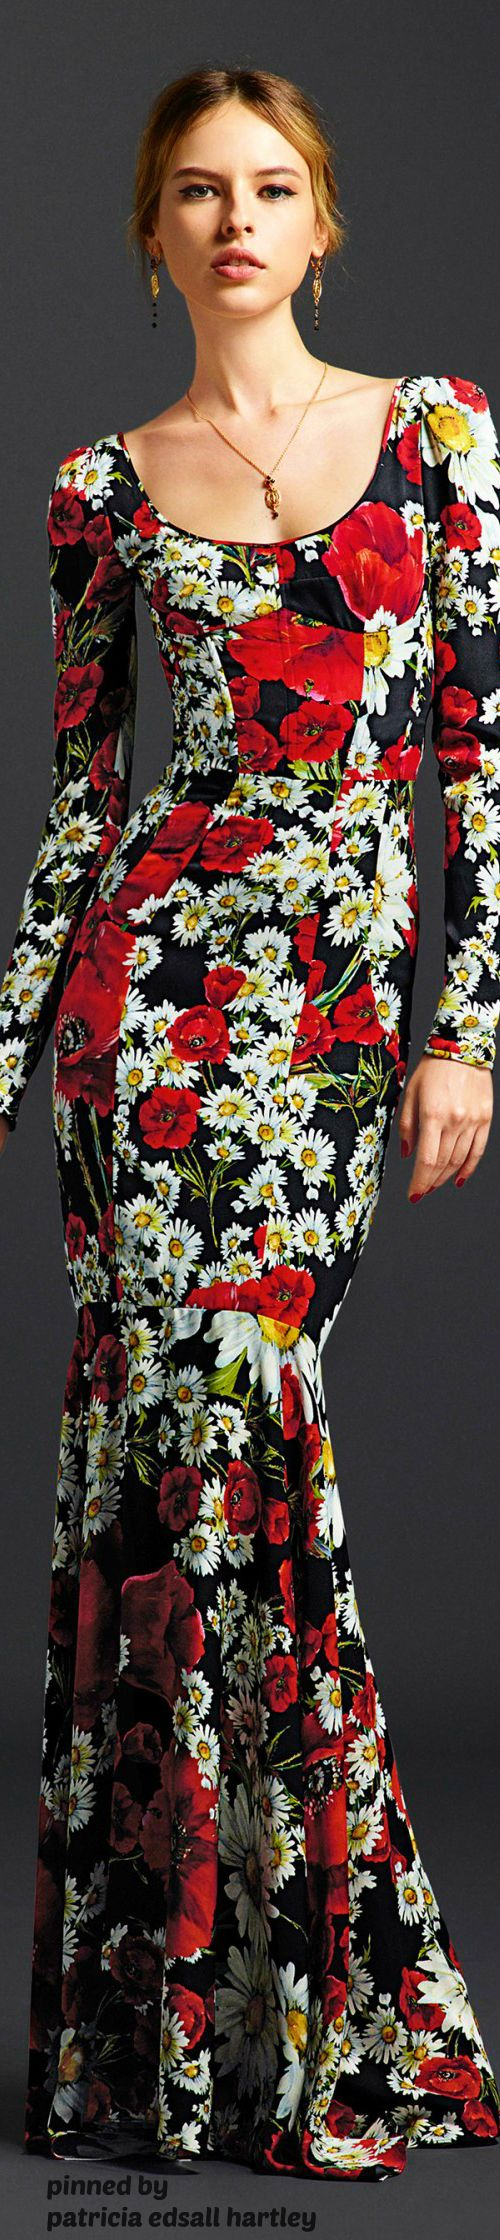 Dolce & Gabbana - Summer 2016 Collection Sera